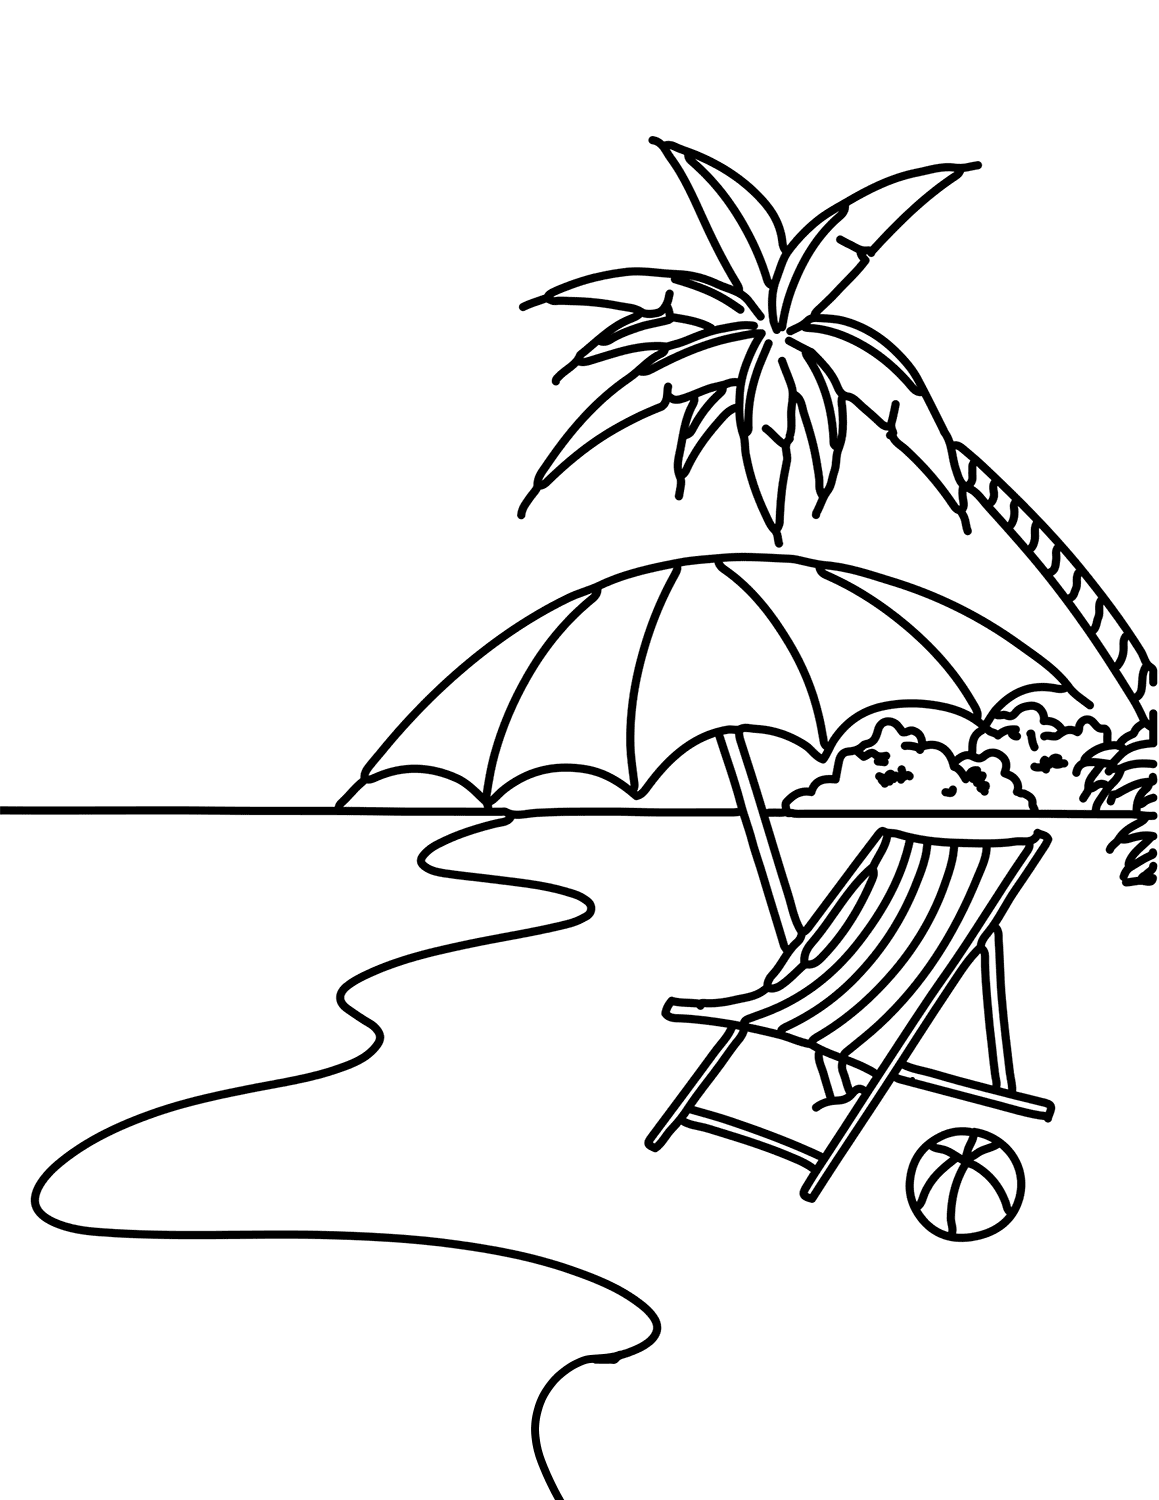 beach colouring page coloring pages beach coloring pages beach scenes activities page beach pages coloring colouring